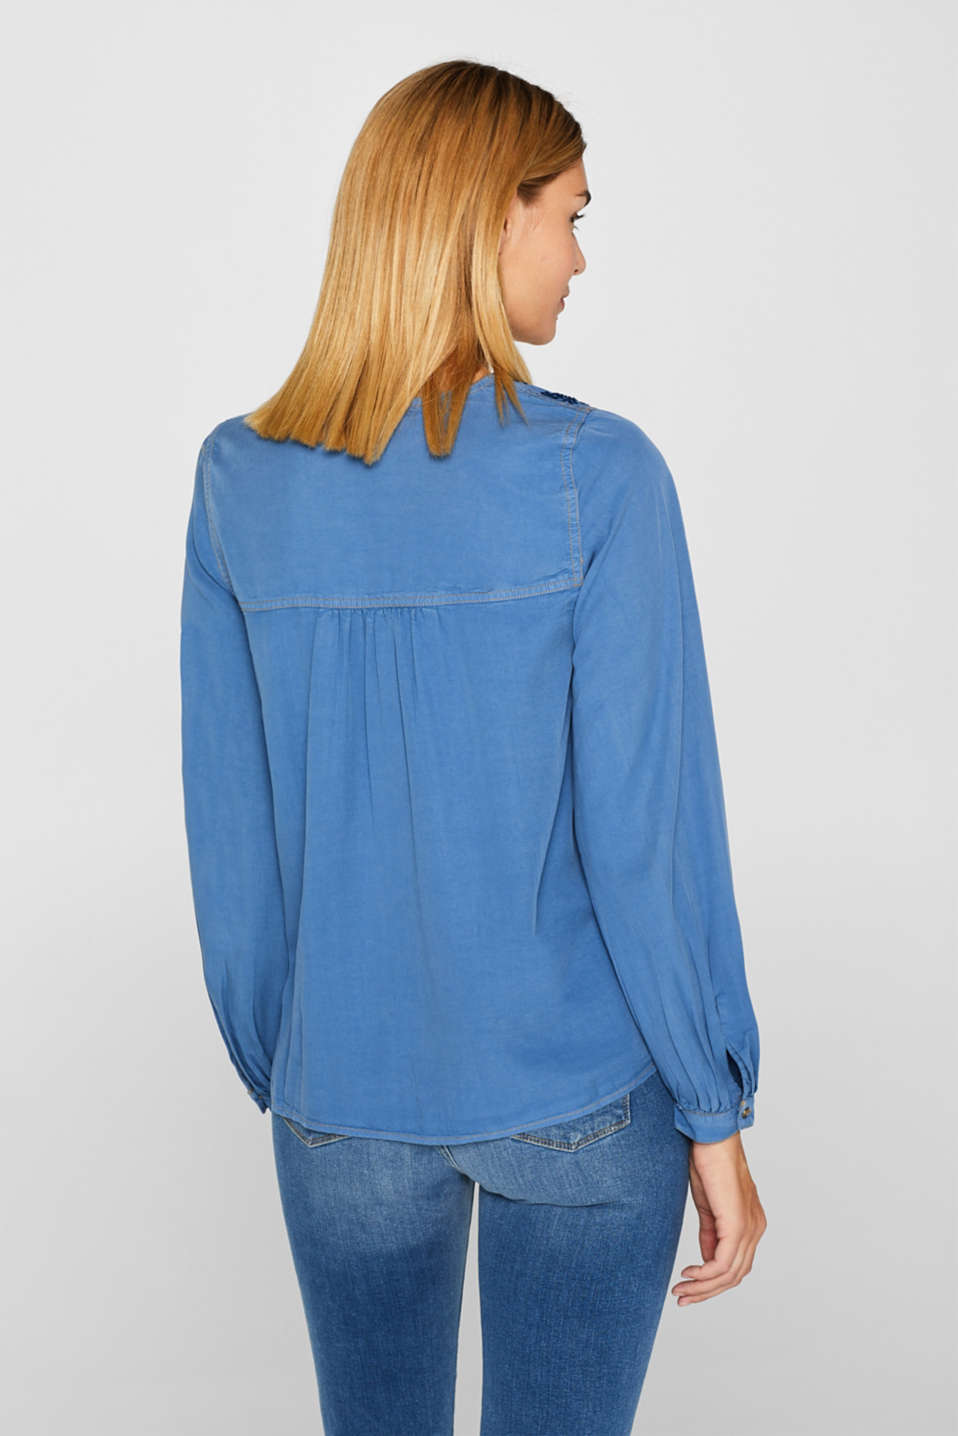 Tunic blouse made of lyocell, GREY BLUE, detail image number 3